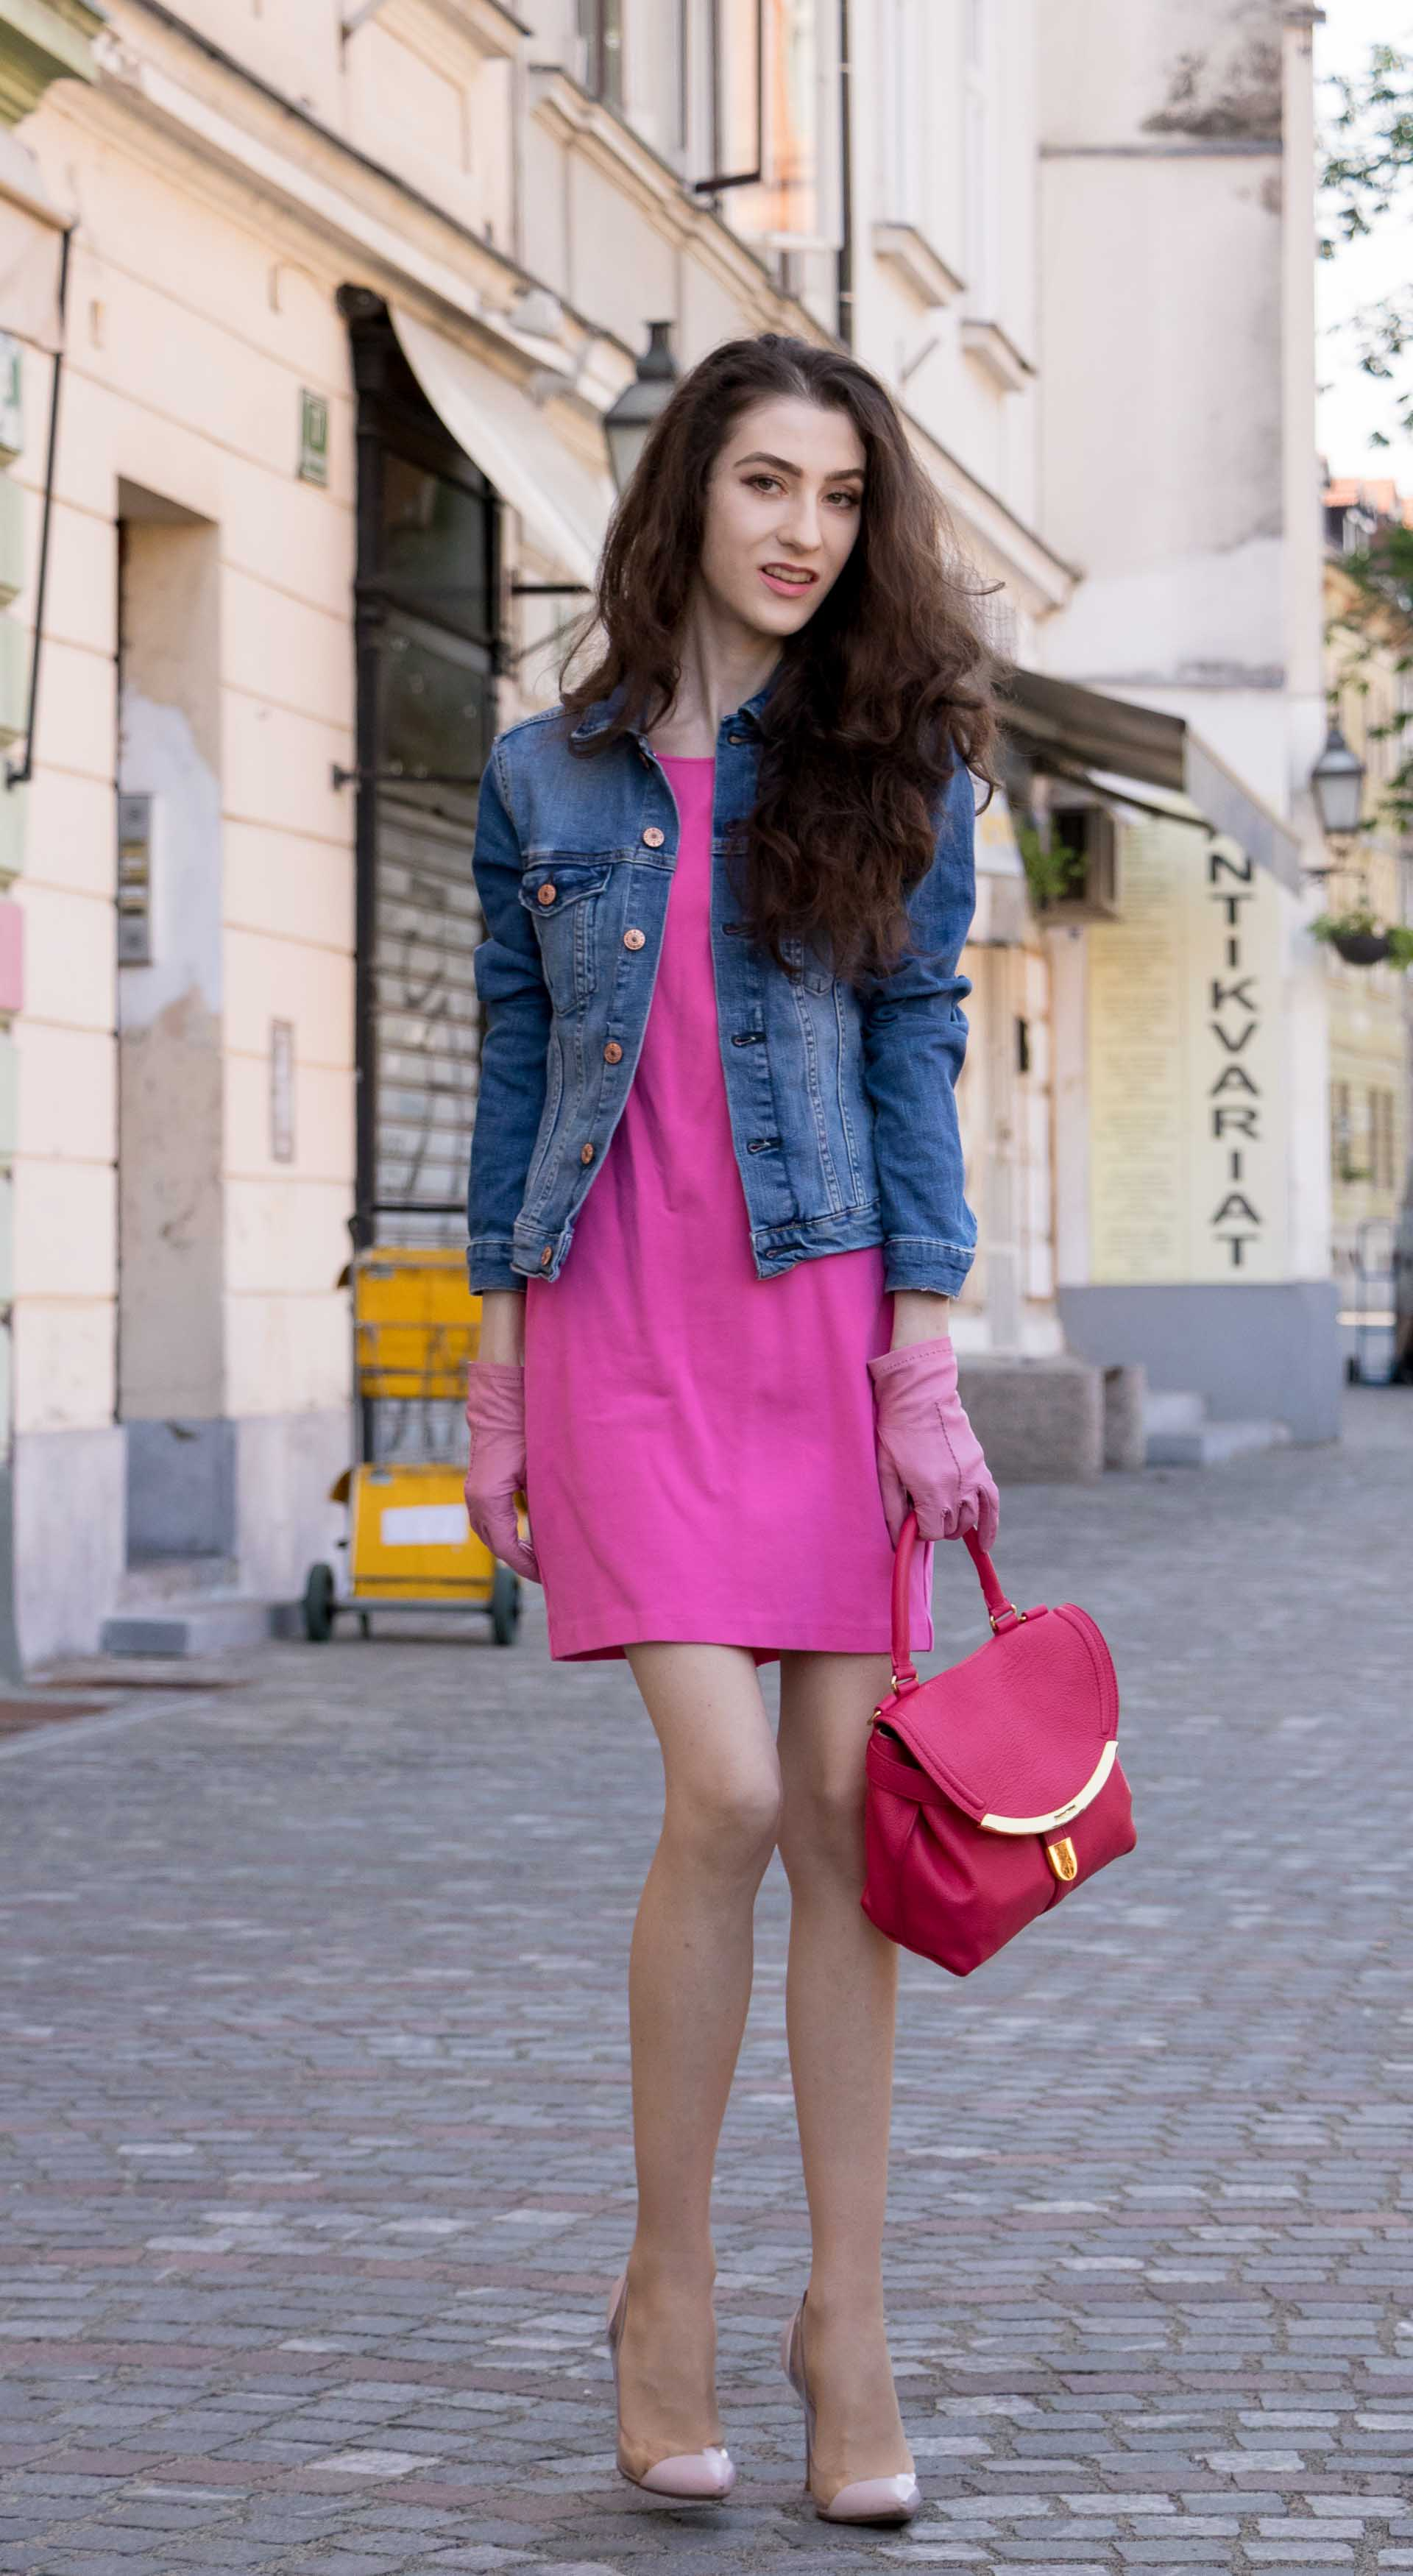 Veronika Lipar Fashion Blogger of Brunette from Wall Street dressed in H&M denim jacket, pink shift cady dress, blush Gianvito Rossi plexi pumps, pink Forzieri gloves, See by Chloé pink top handle bag, Adam Selman x Le Specs white cat eye Lolita sunglasses while standing on the street in Ljubljana